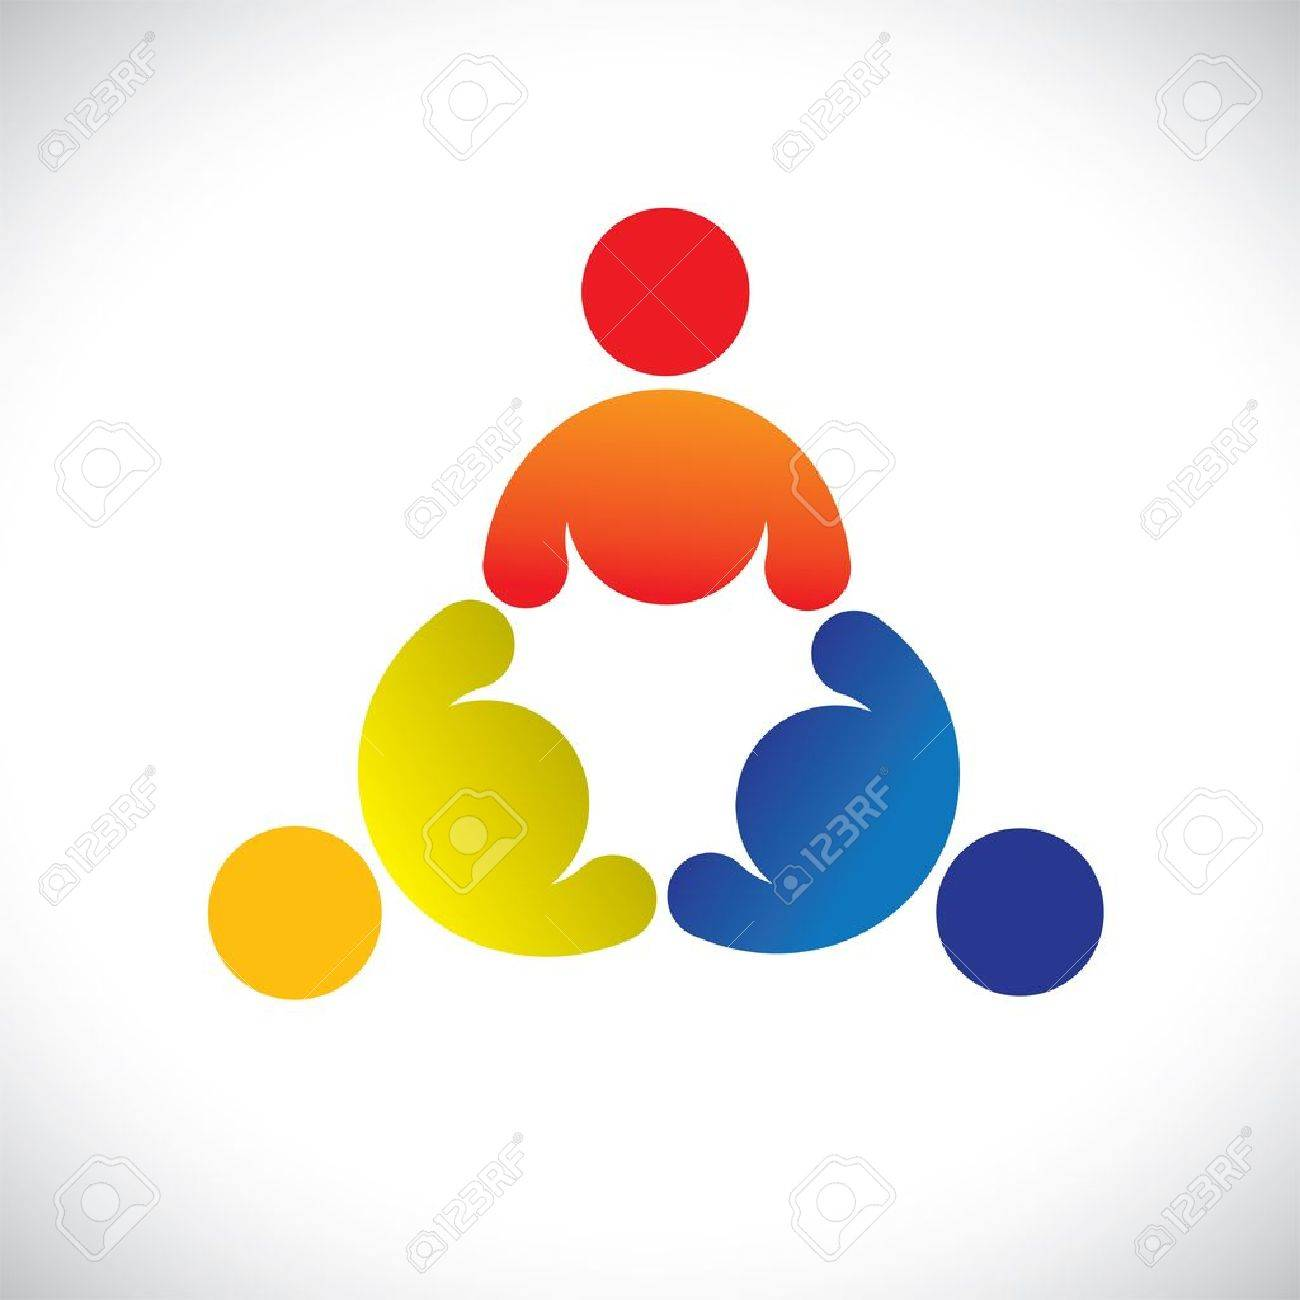 Concept graphic- colorful threesome children playing icons(signs). The  illustration represents concepts